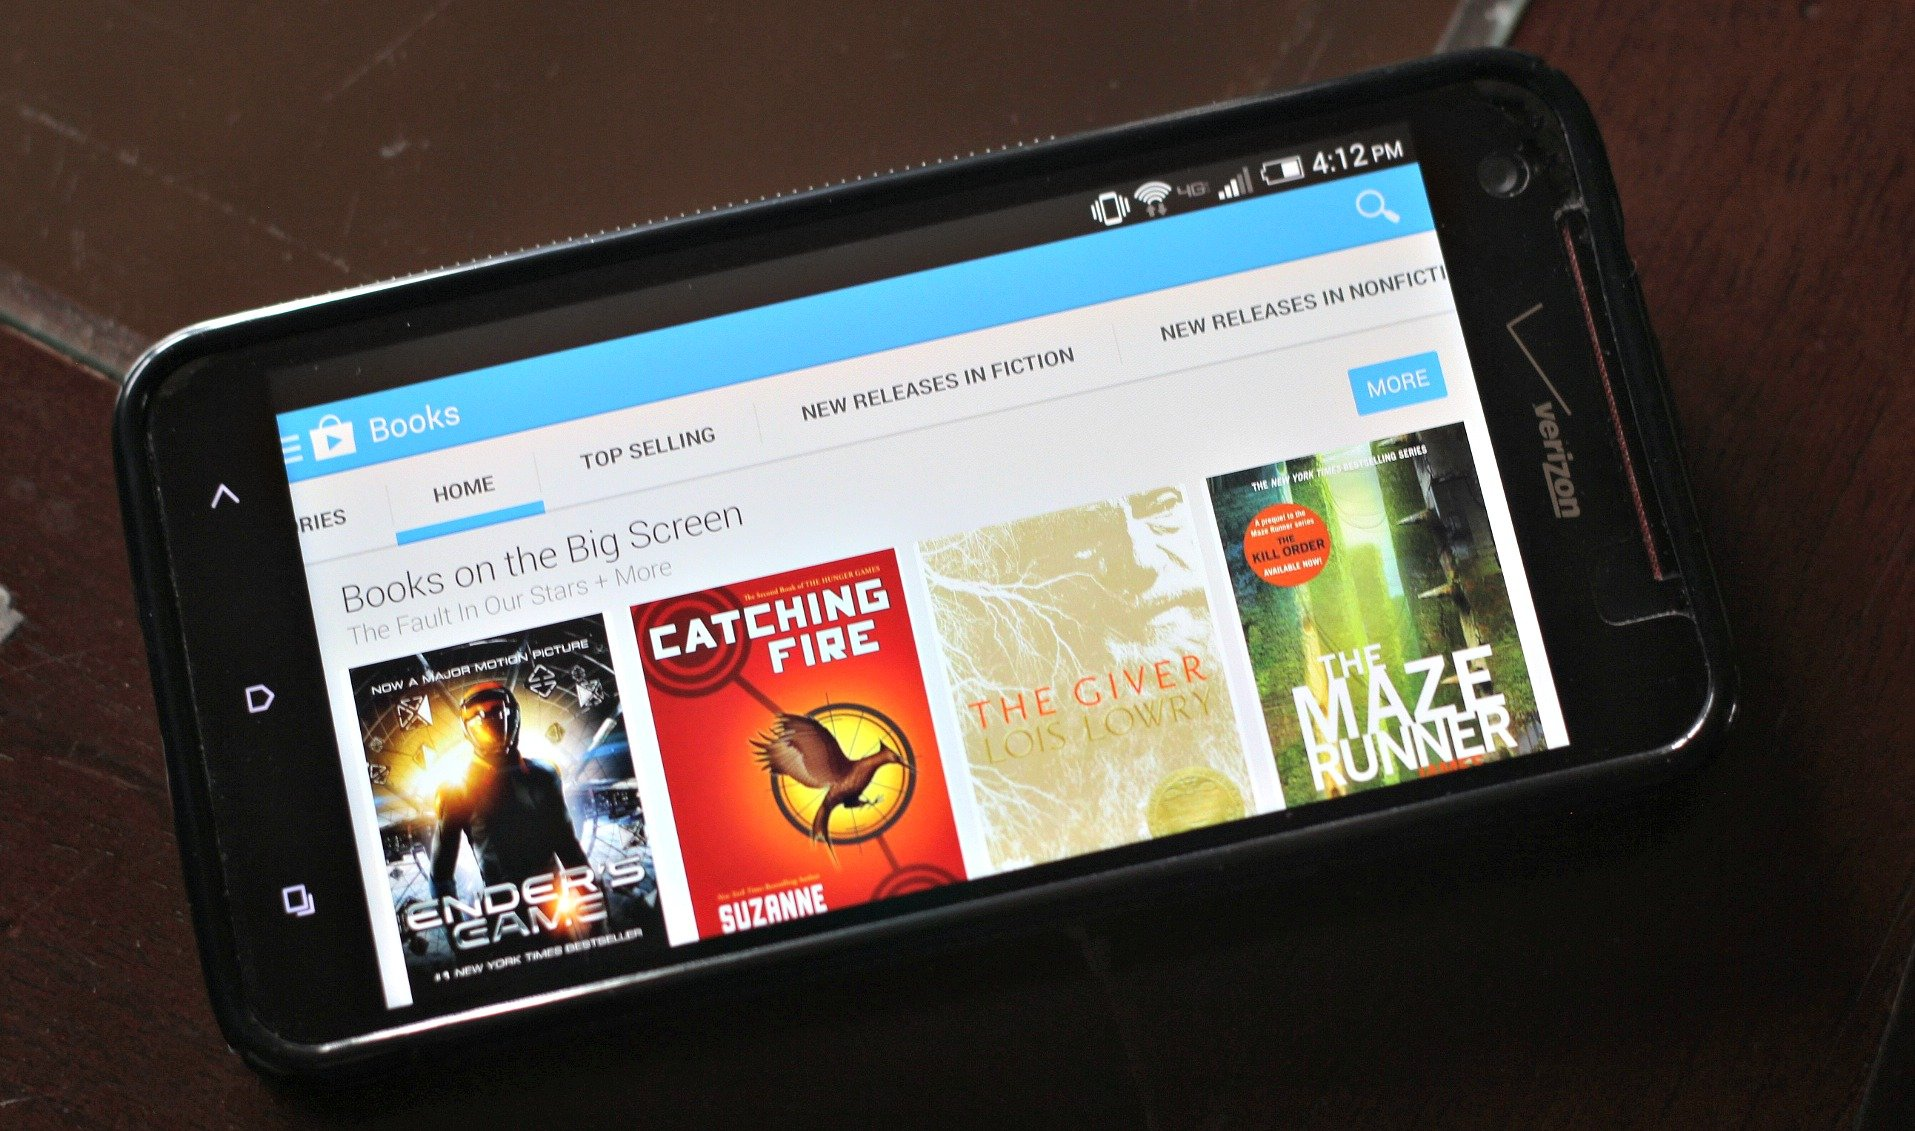 Interesting Read A Book From Google Play Books Android Central Google Photo Books Add Text Google Photo Books India Read A Book From Google Play Books How To Buy How To Buy photos Google Photo Books